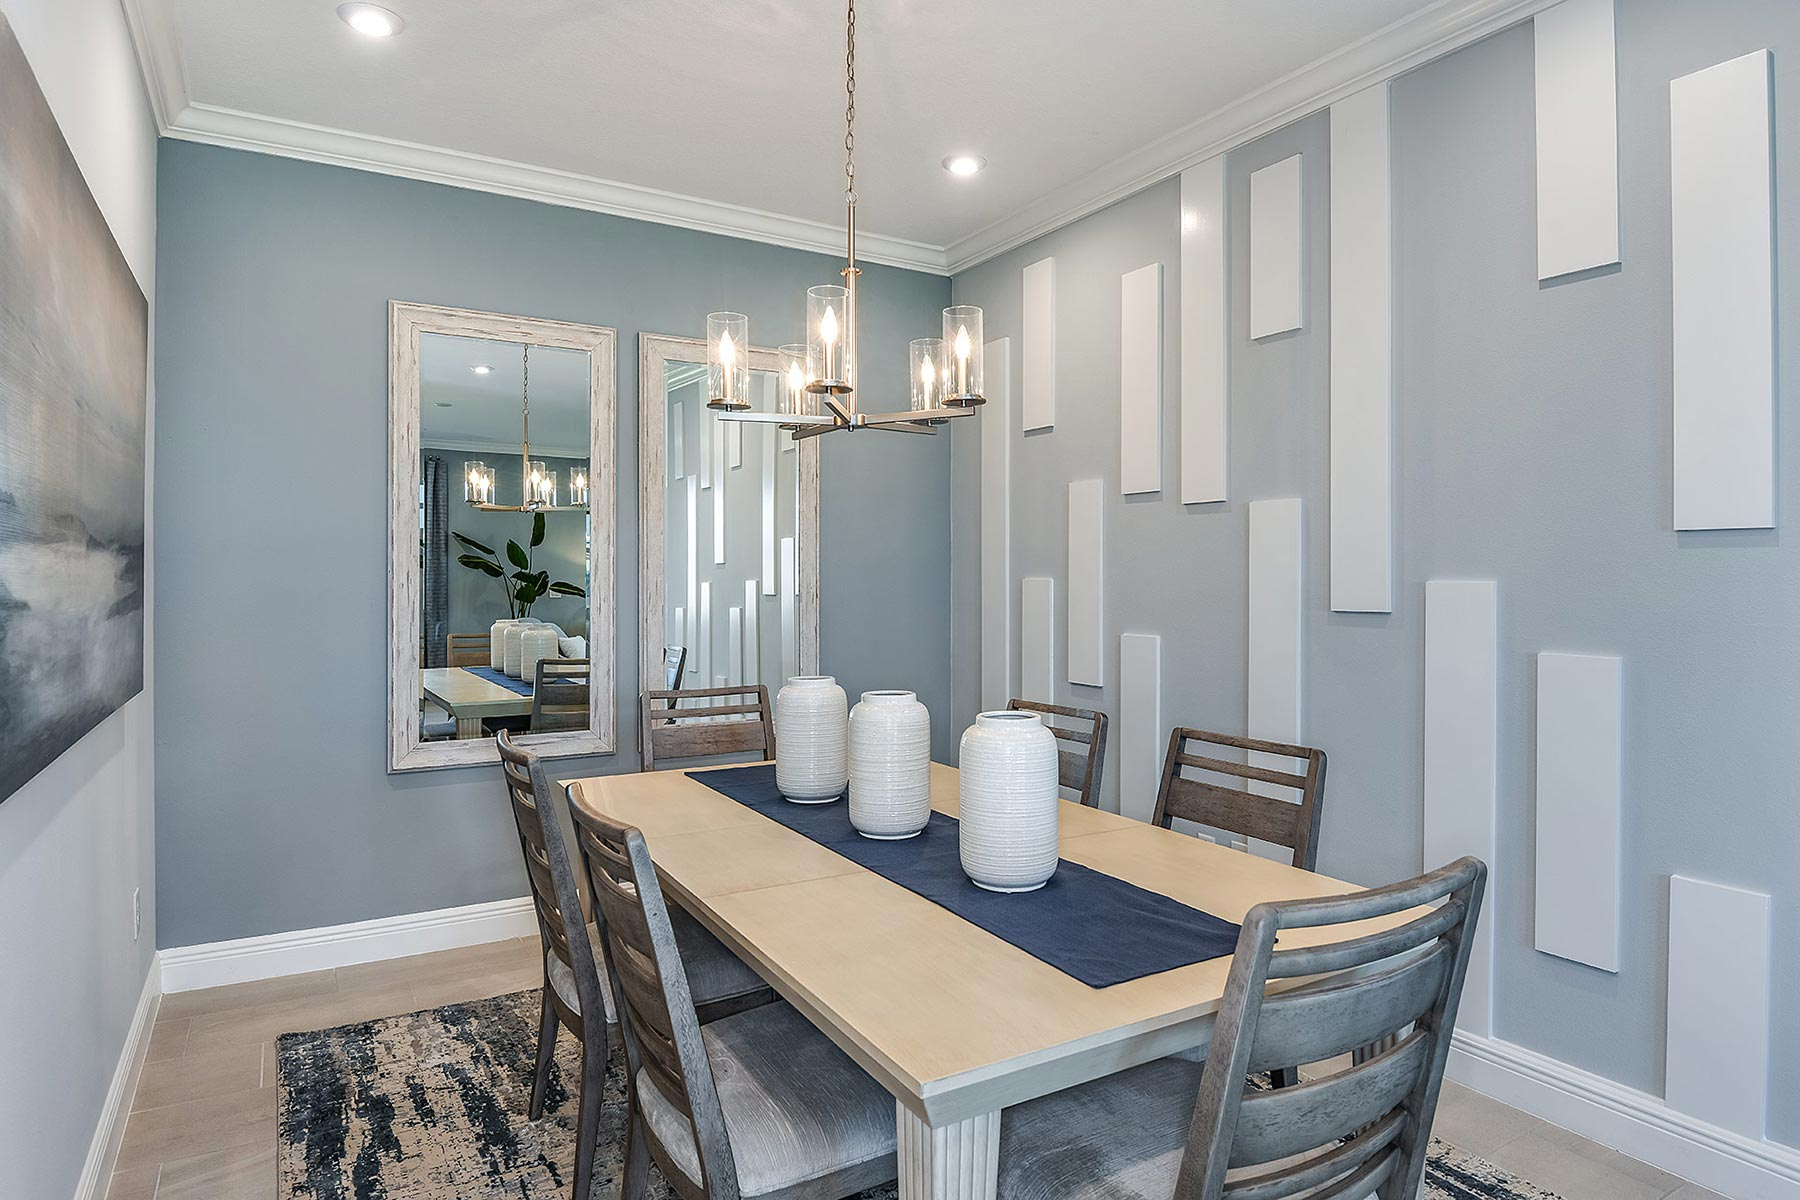 Bonavie Cove Dining in Fort Myers Florida by Mattamy Homes